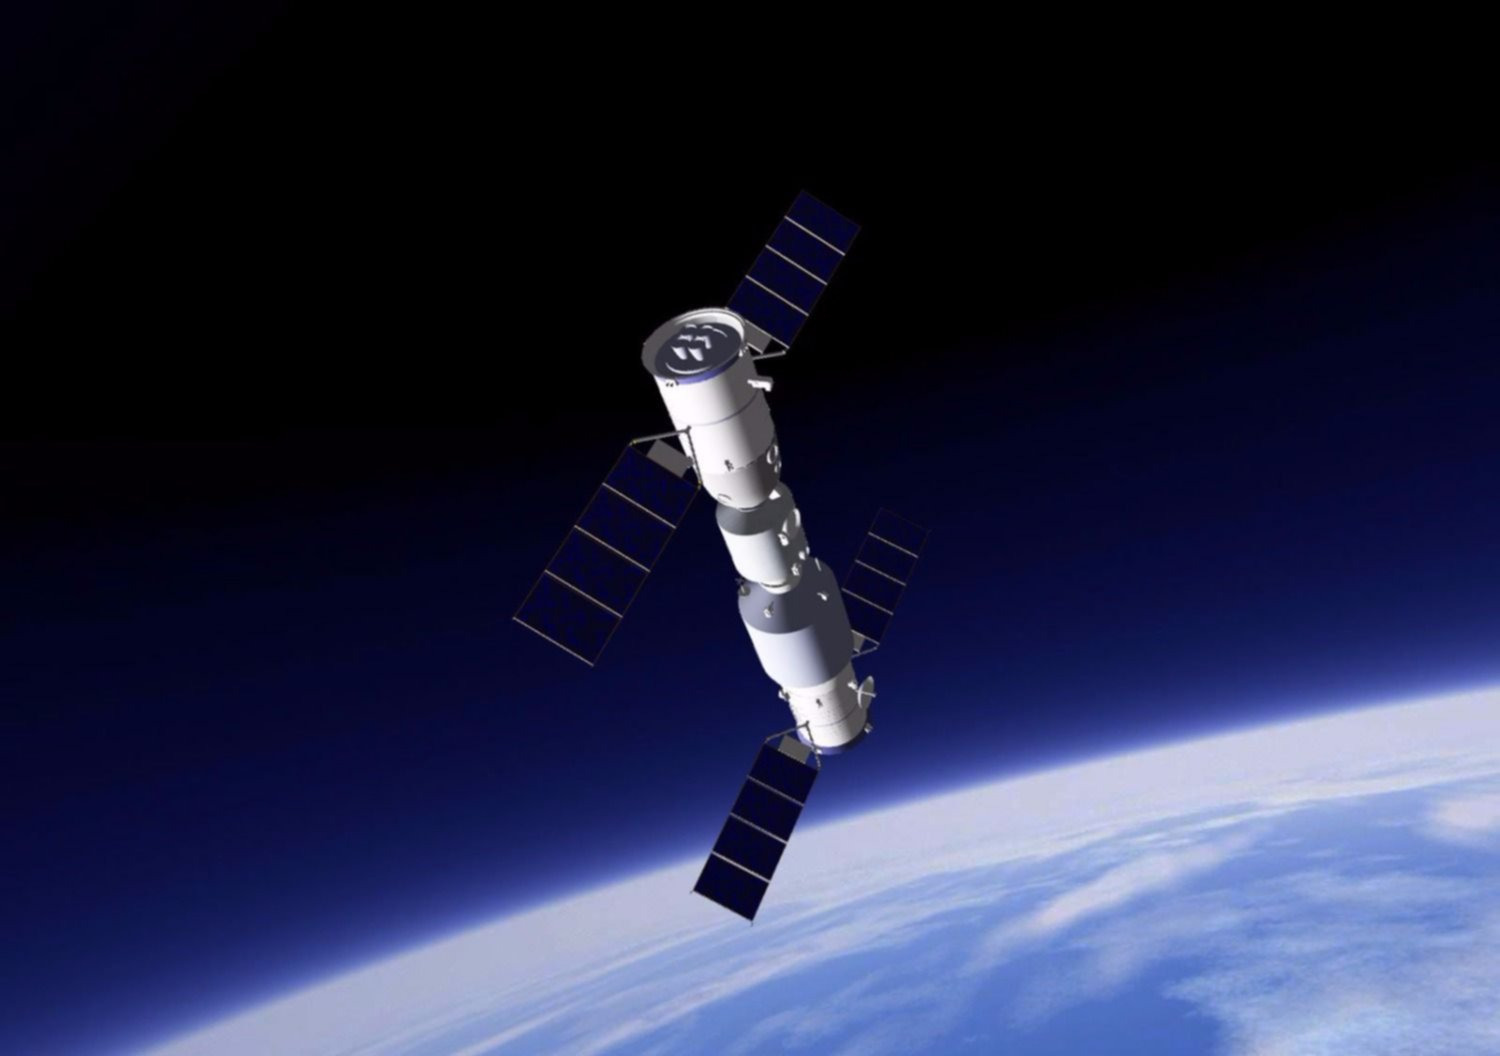 china space agency - HD1500×1056